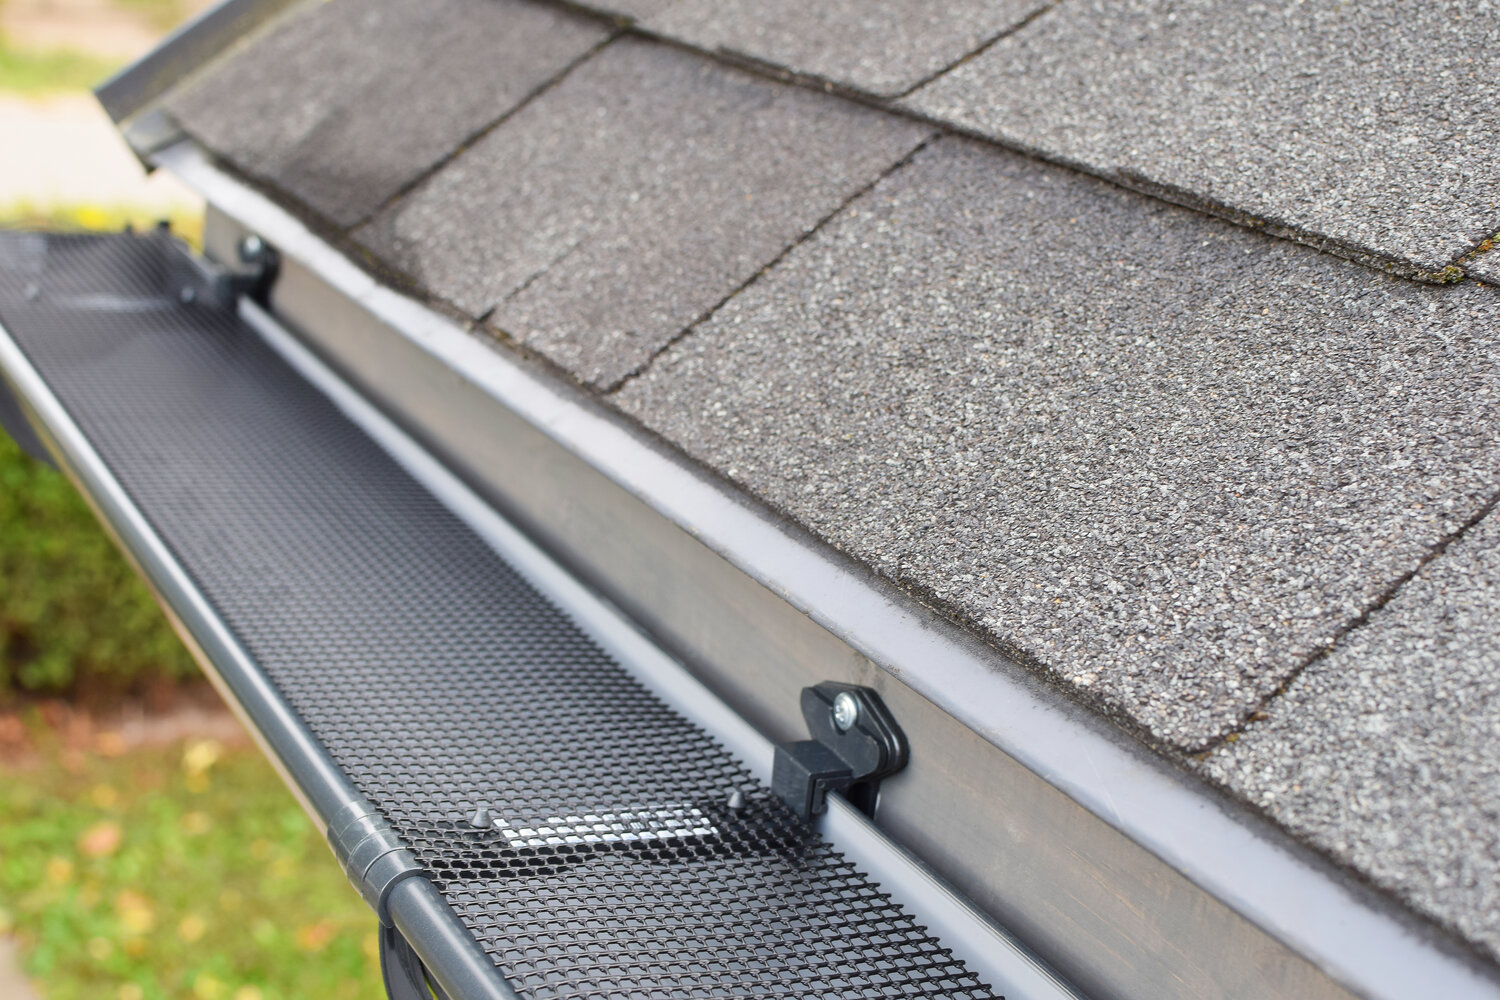 Roof Gutter Guard Mesh Plastic Mesh Gutter Guard Protector with 10 Clip Hooks Easy Install High Resist Plastic Mesh Gutter Guard to Protect from Leaves or Debris Clogging Gutter,Downspout,and Drain